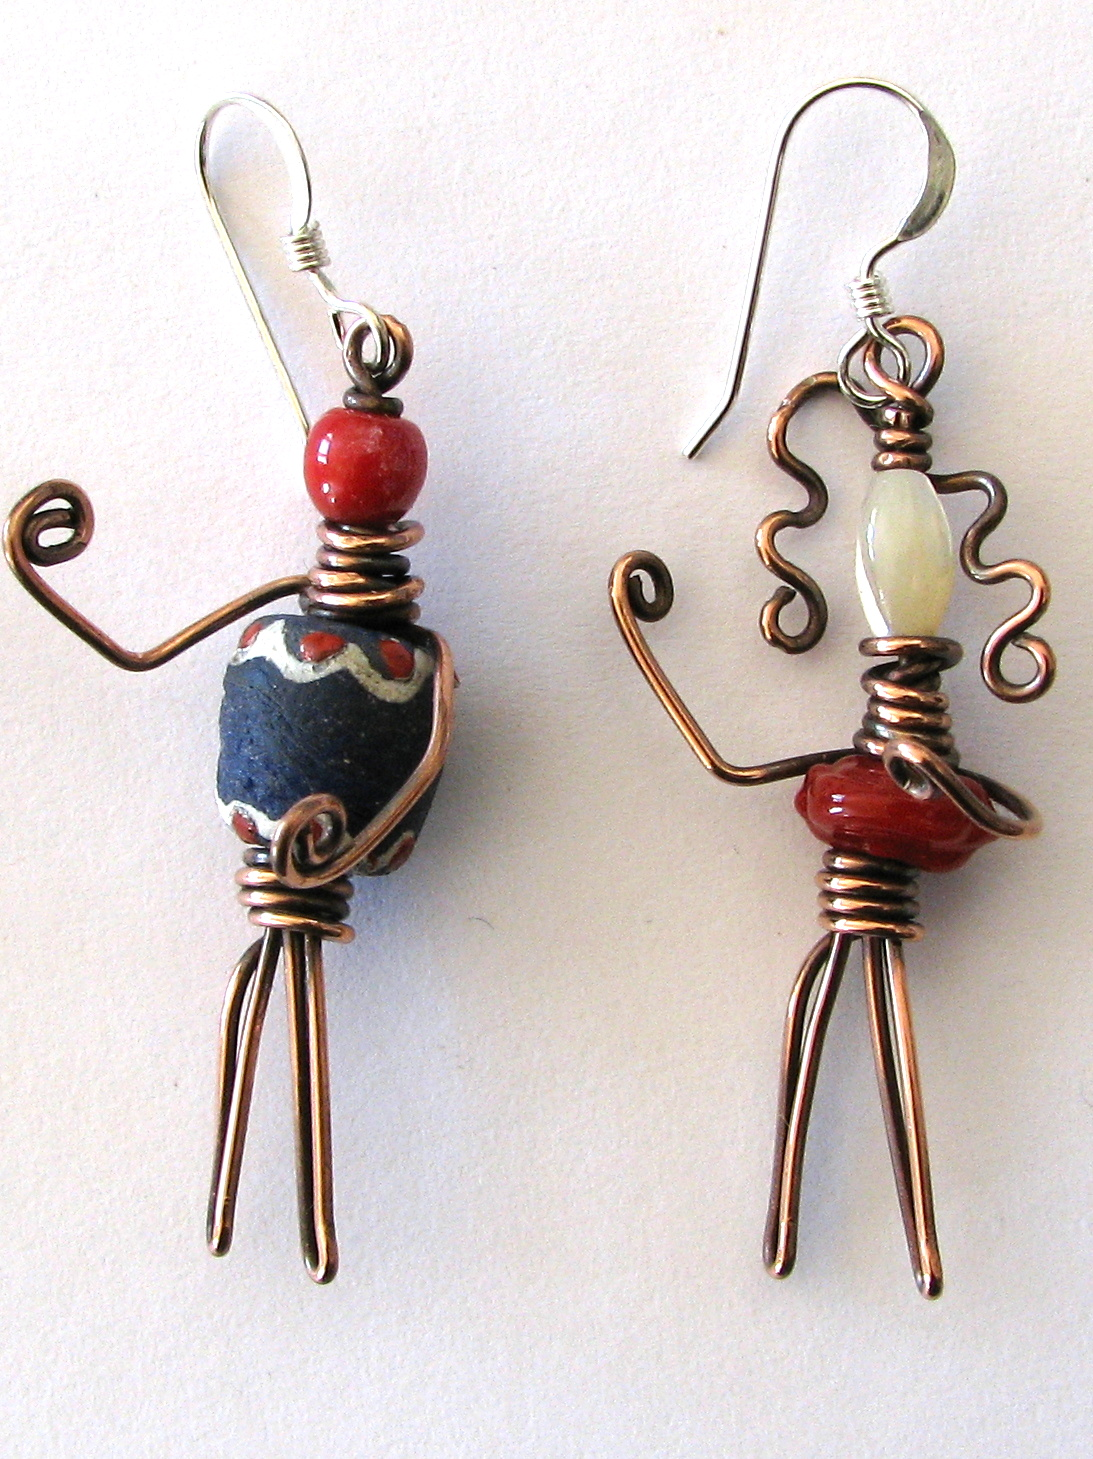 The Bead People Earrings and How they began